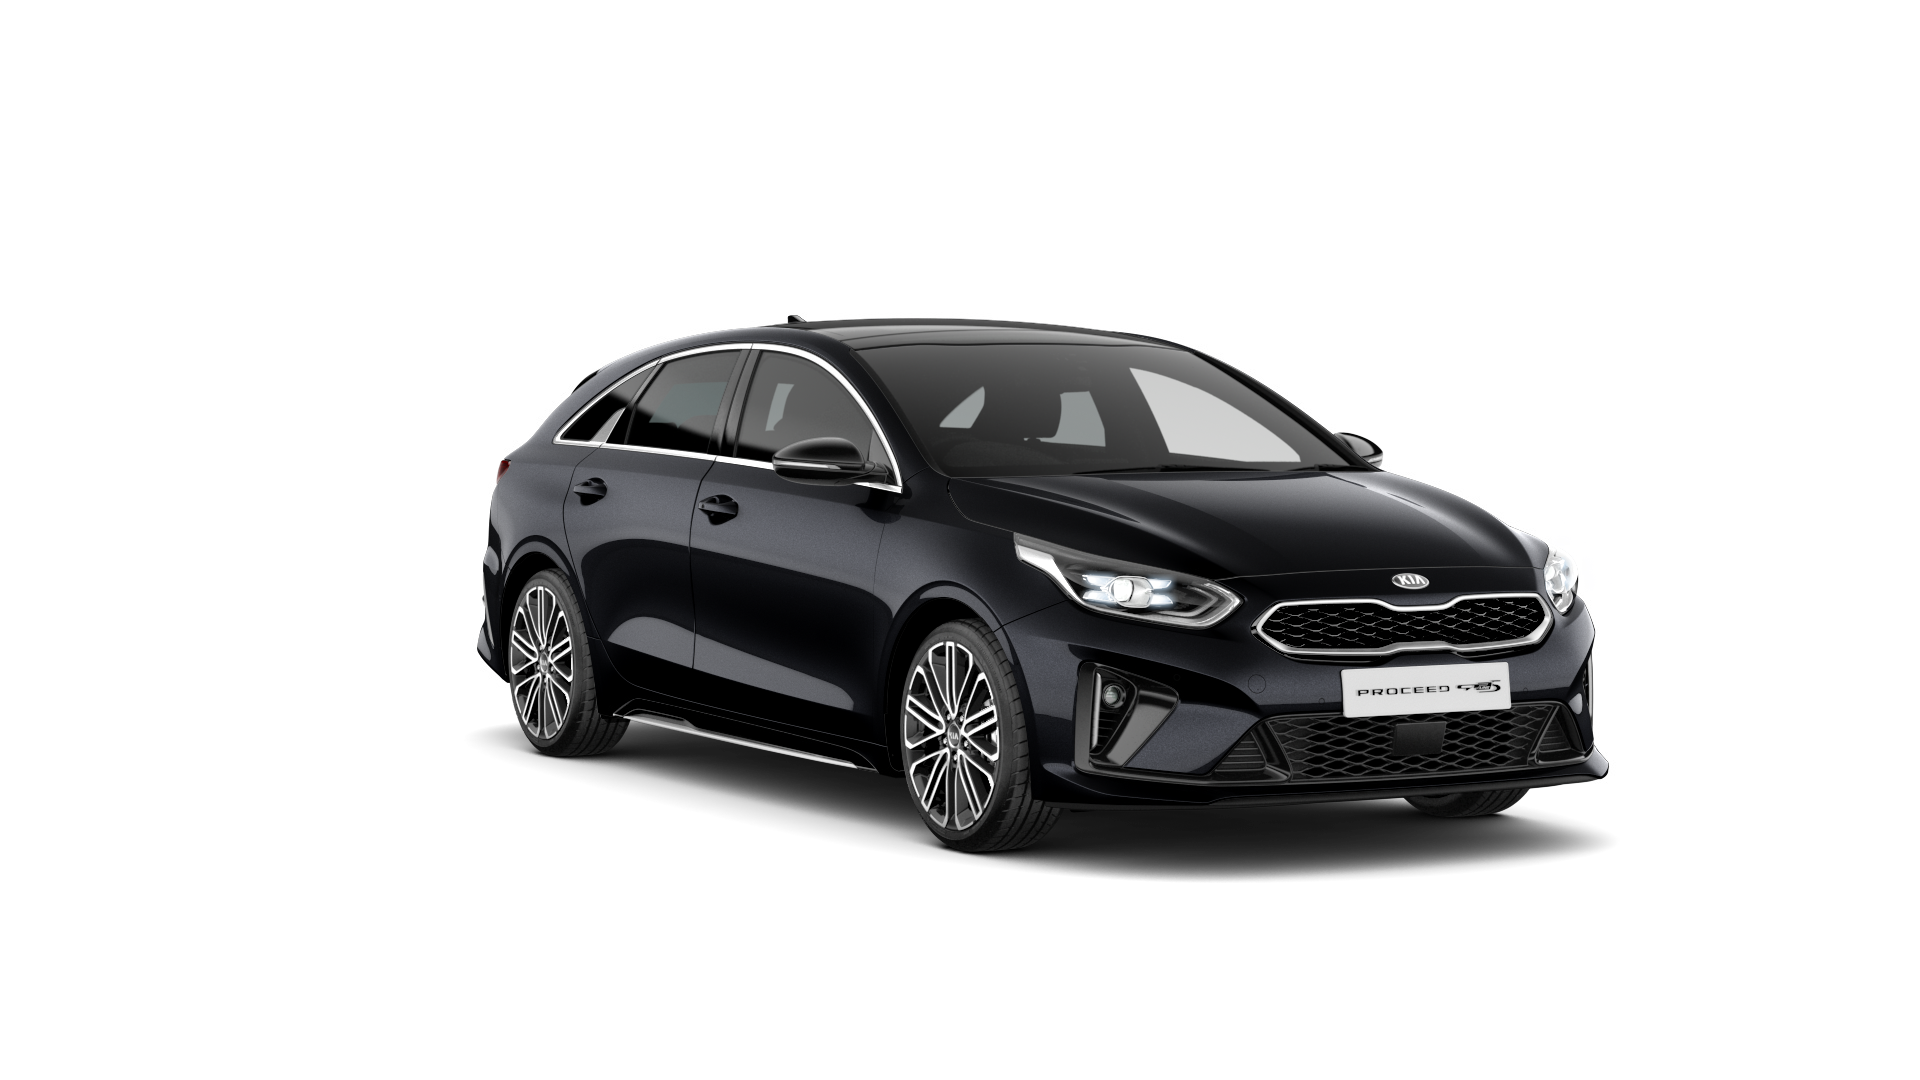 Kia New ProCeed Phantom Black (Premium)